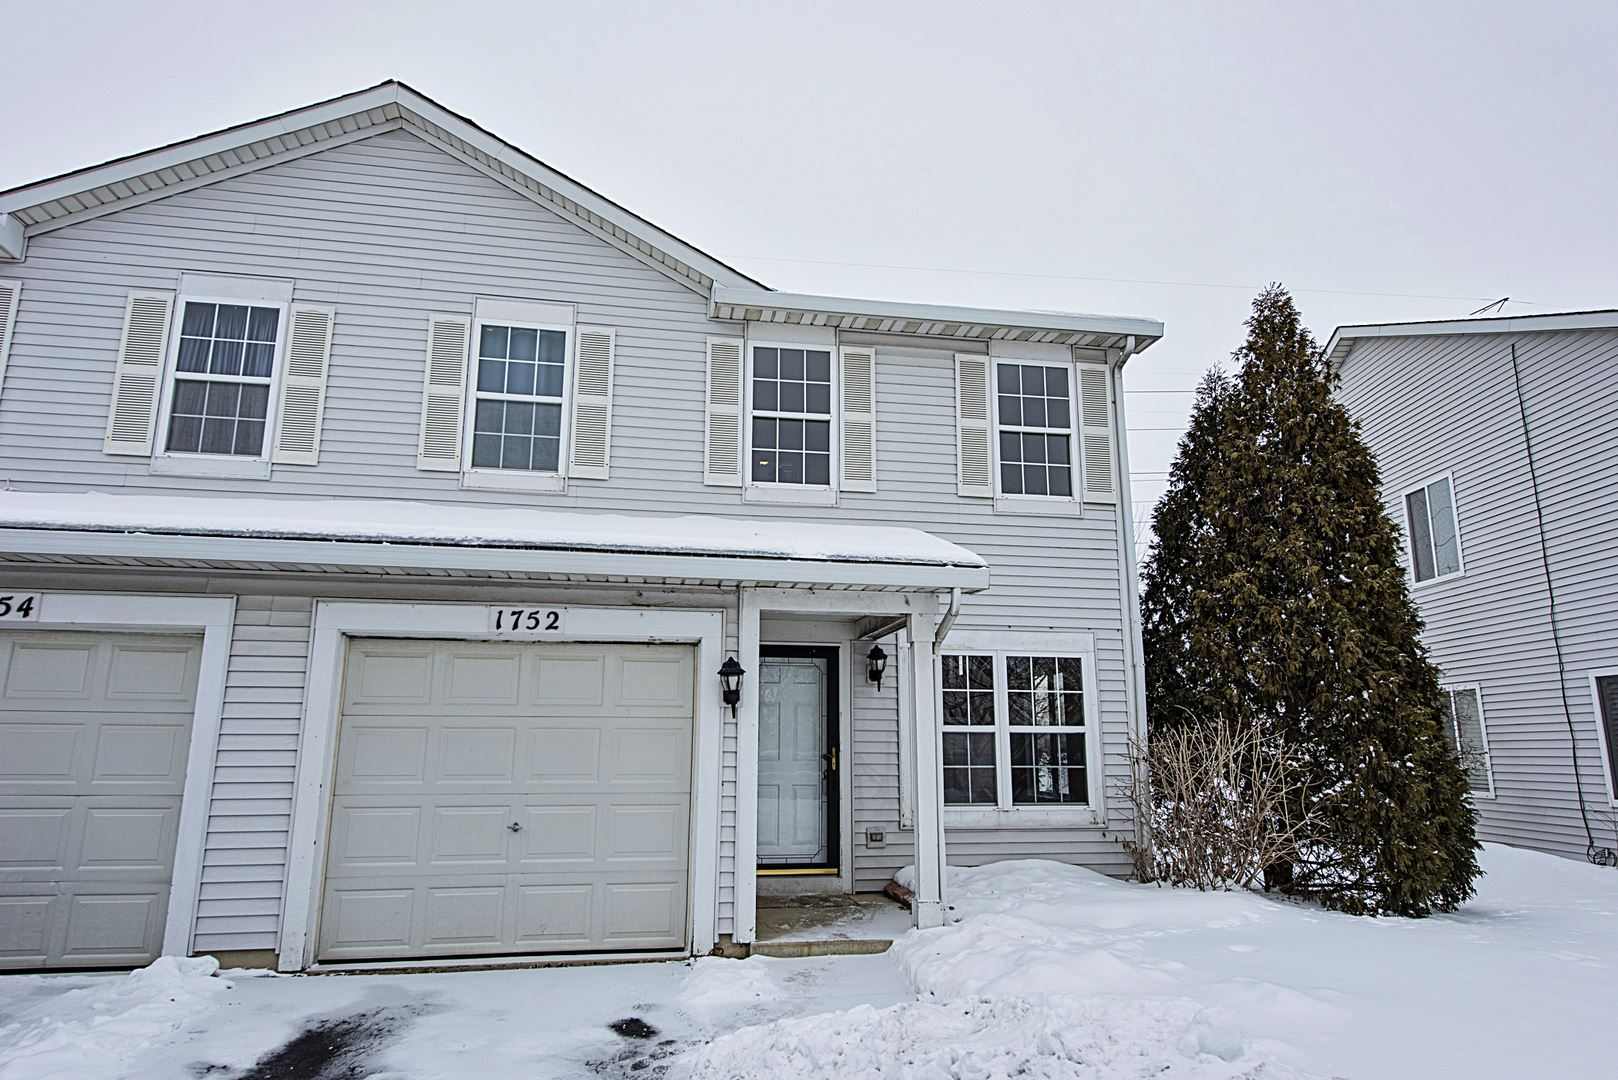 Photo of 1752 Raleigh Trail, Romeoville, IL 60446 (MLS # 10978803)